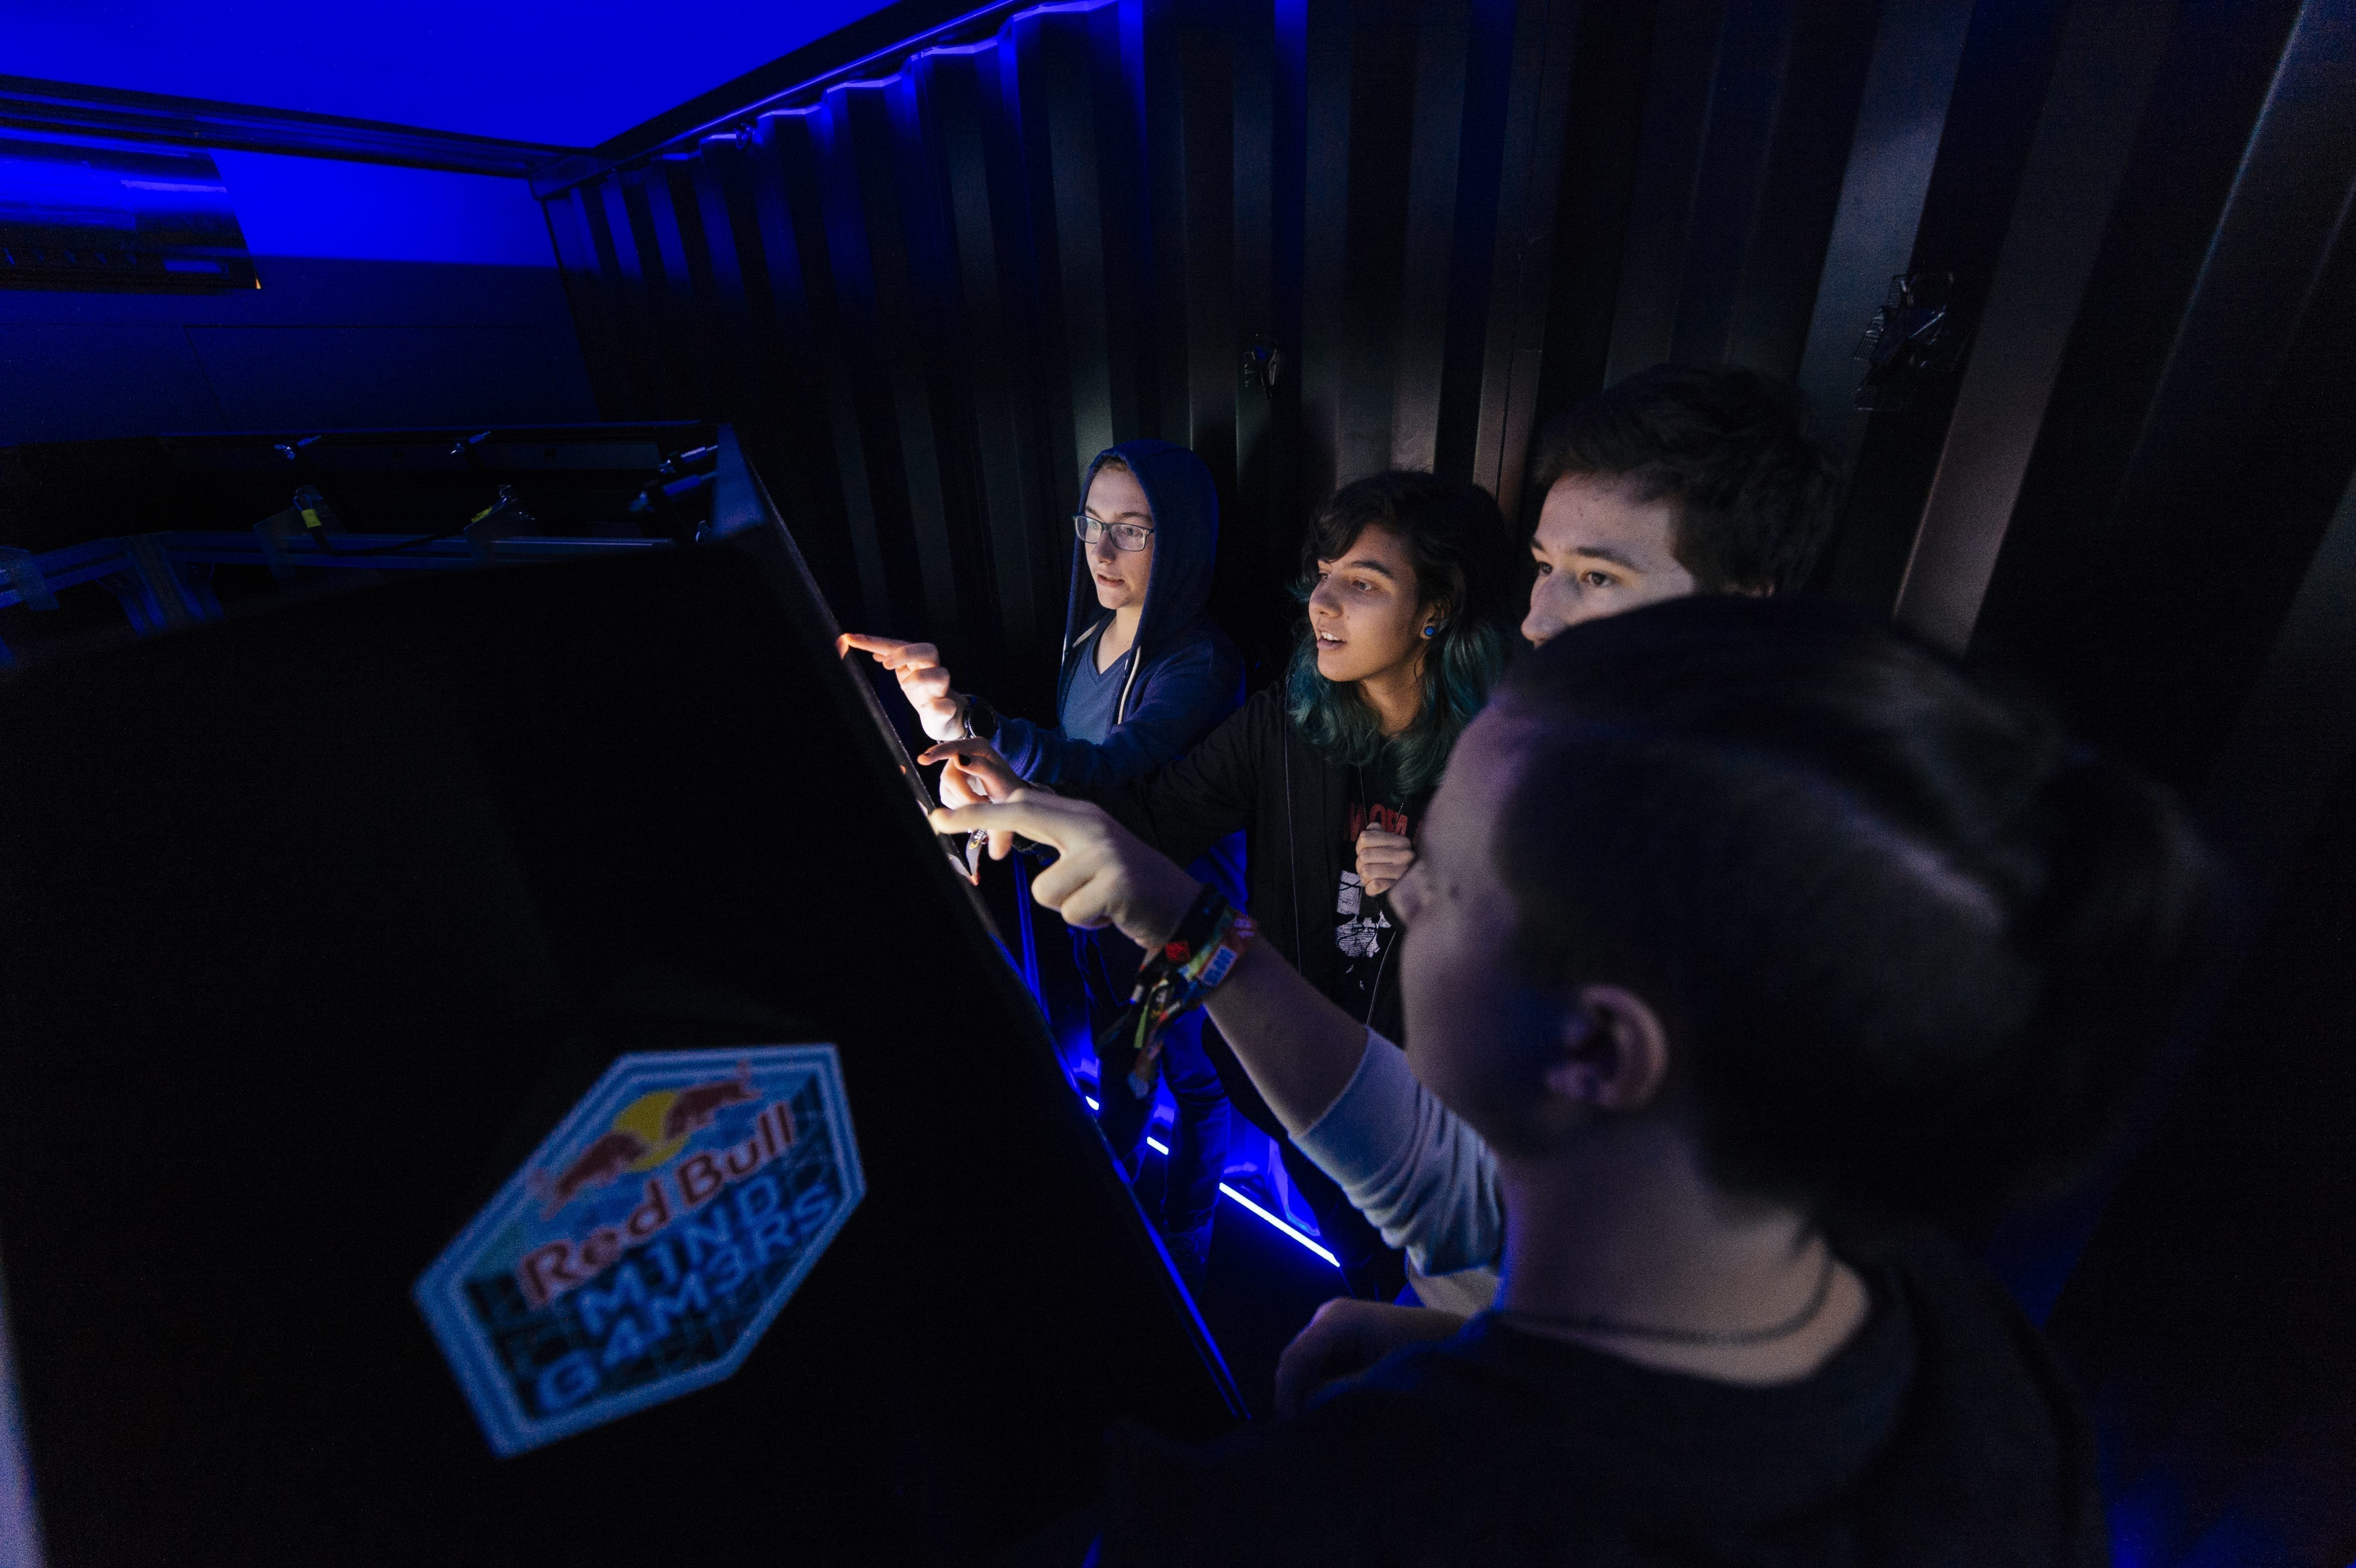 Competitors at the Red Bull Escape Room World Championship Qualifier 2018 Vienna, Austria on October 19th, 2018